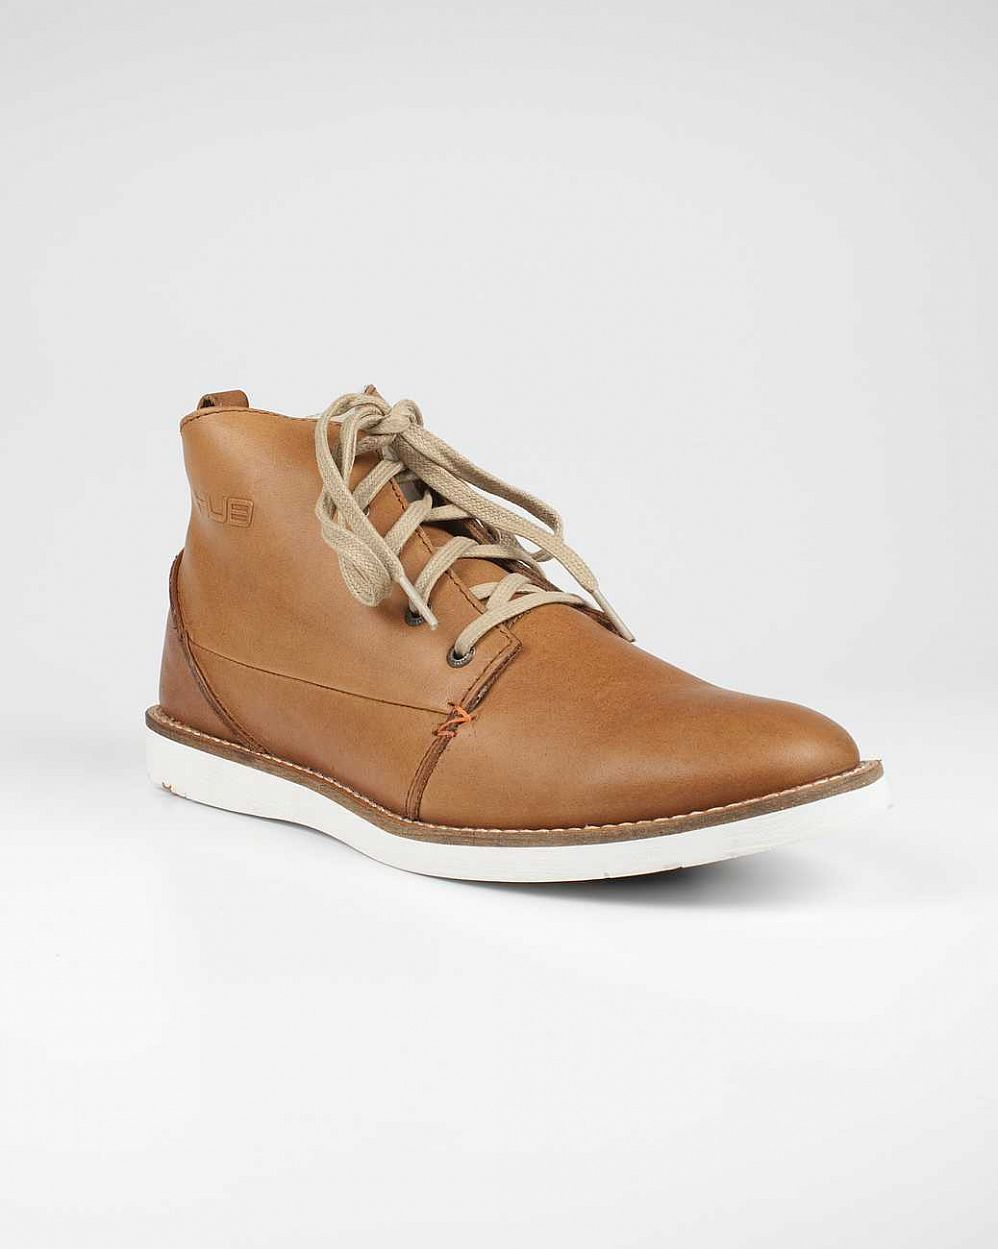 купить Ботинки Hubfootwear Jag Wool Leather not tumbl brown white в Москве